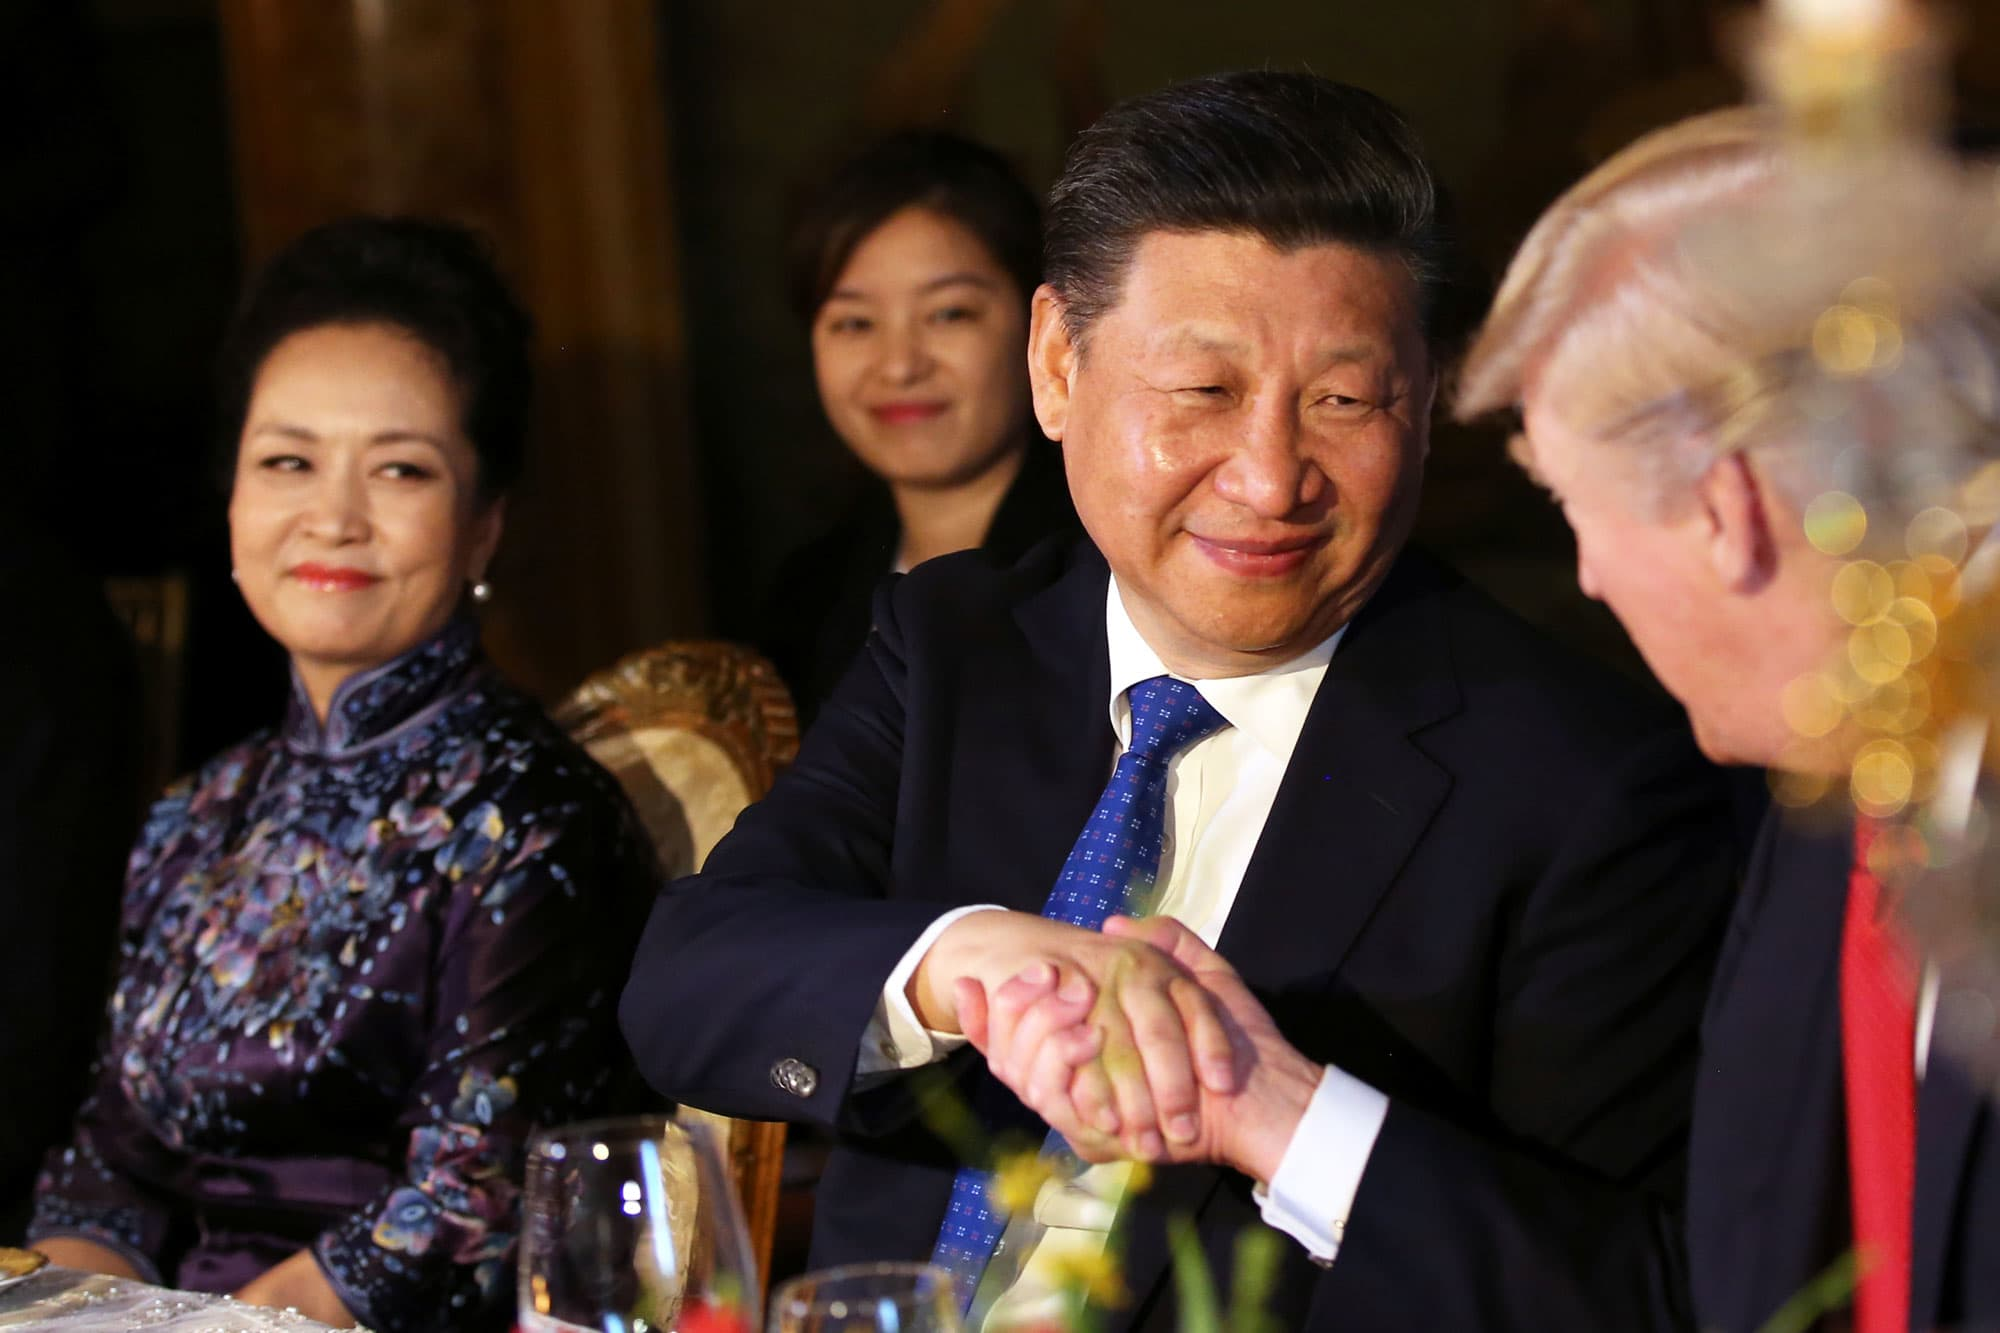 Trump suggests 'personal meeting' with China's Xi over Hong Kong crisis